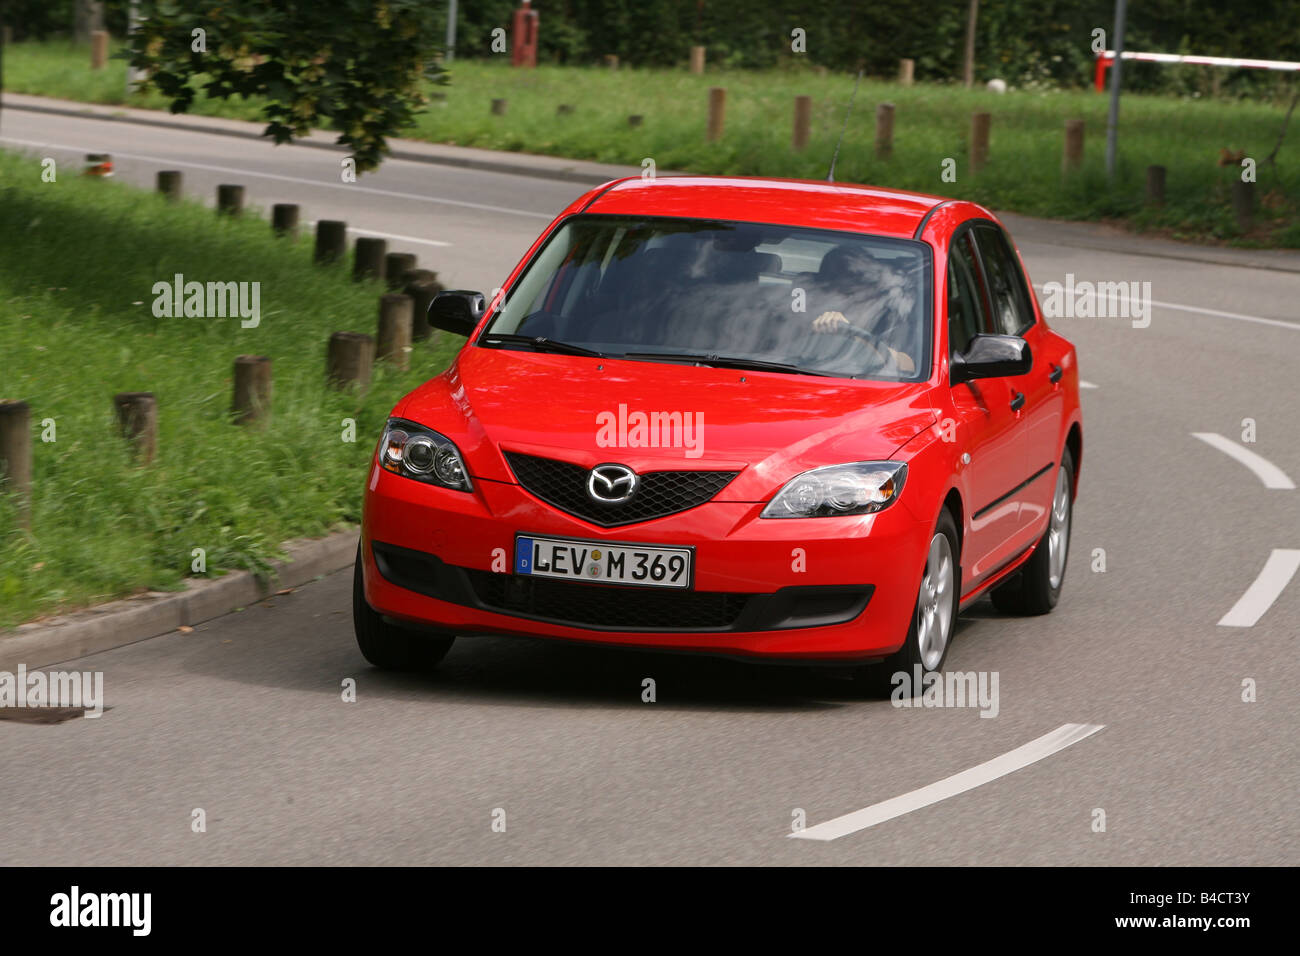 mazda 3 sport 1.4 mzr, model year 2003-, red, driving, diagonal